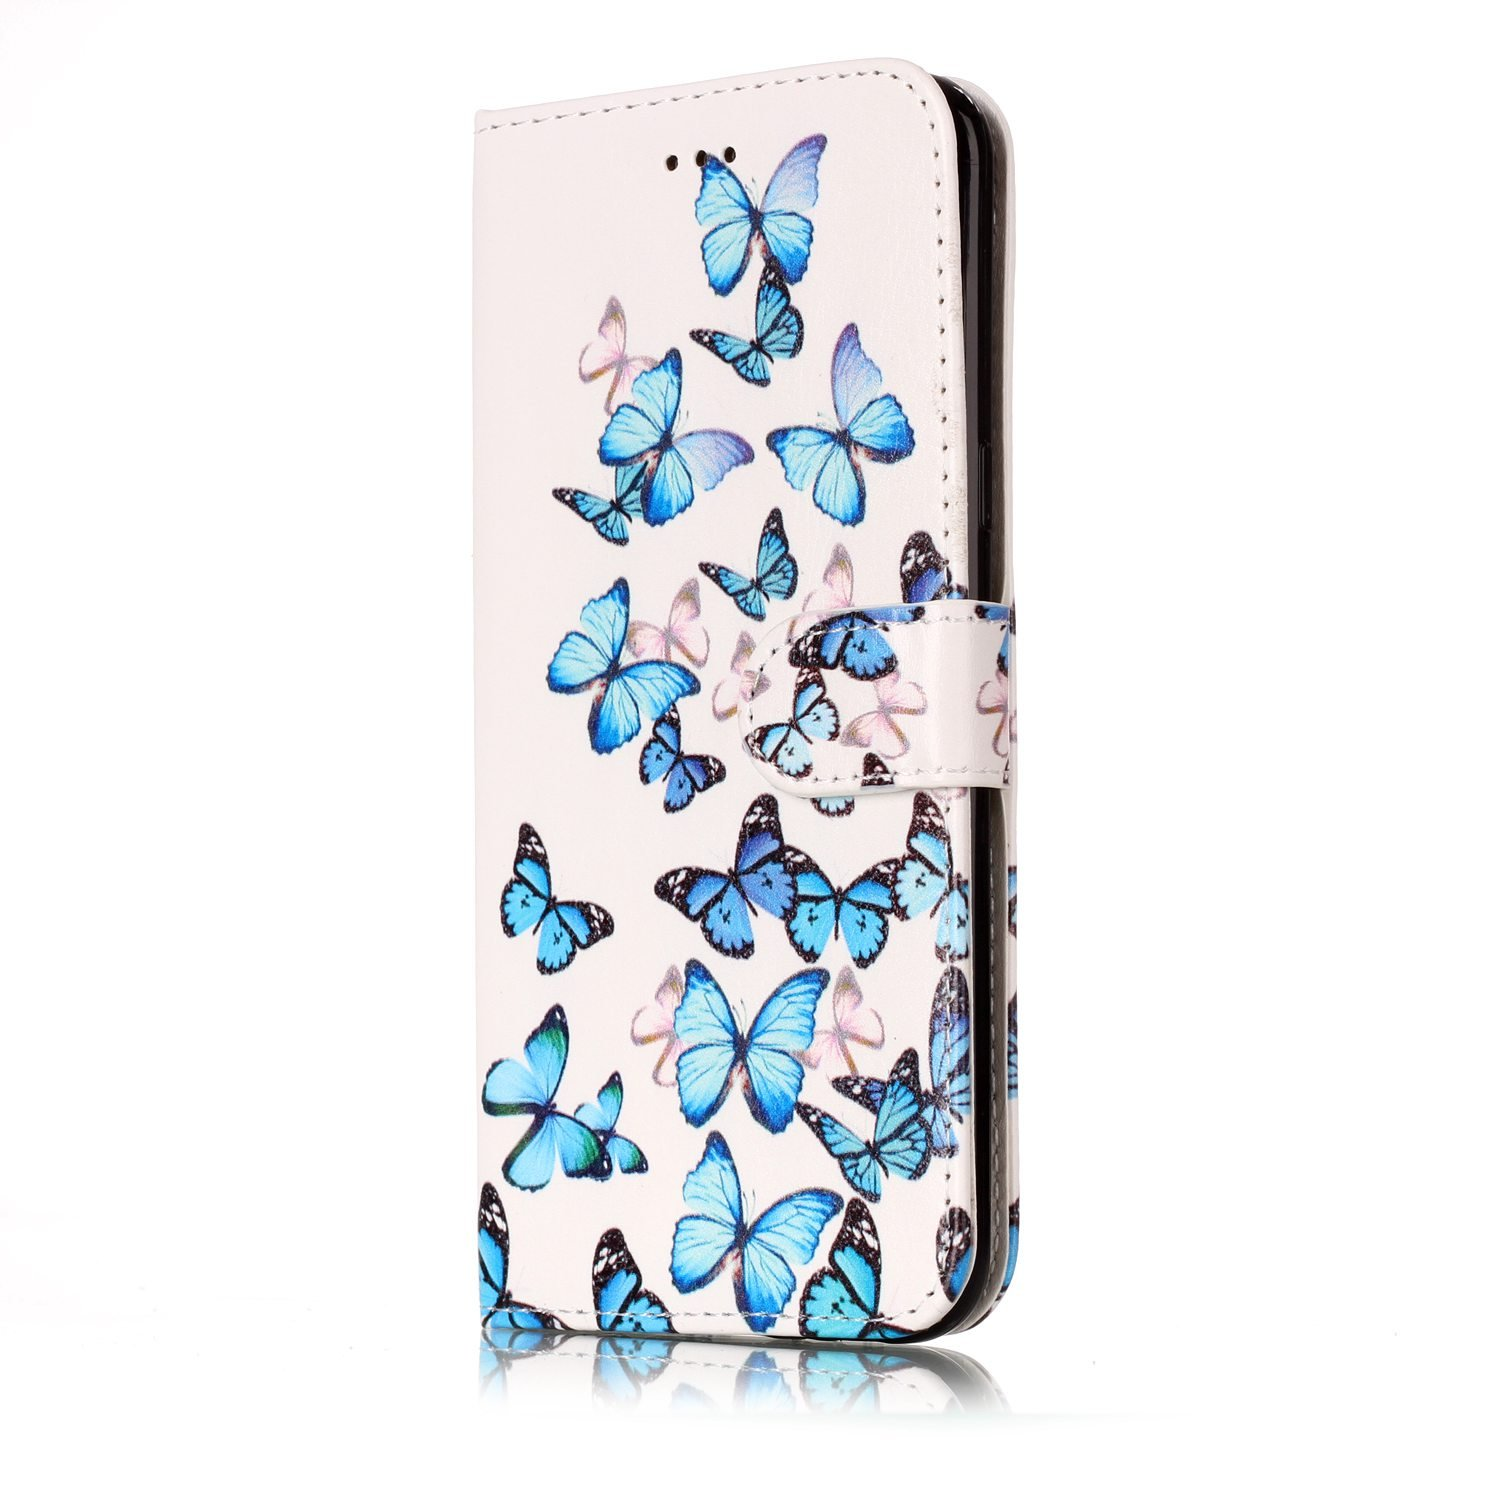 STENES Galaxy S8 Plus Wallet Case - Stylish Series Butterfly Premium Soft PU Color matching [Stand Feature] Leather Wallet Cover Flip Cases For Samsung Galaxy S8 Plus - Blue